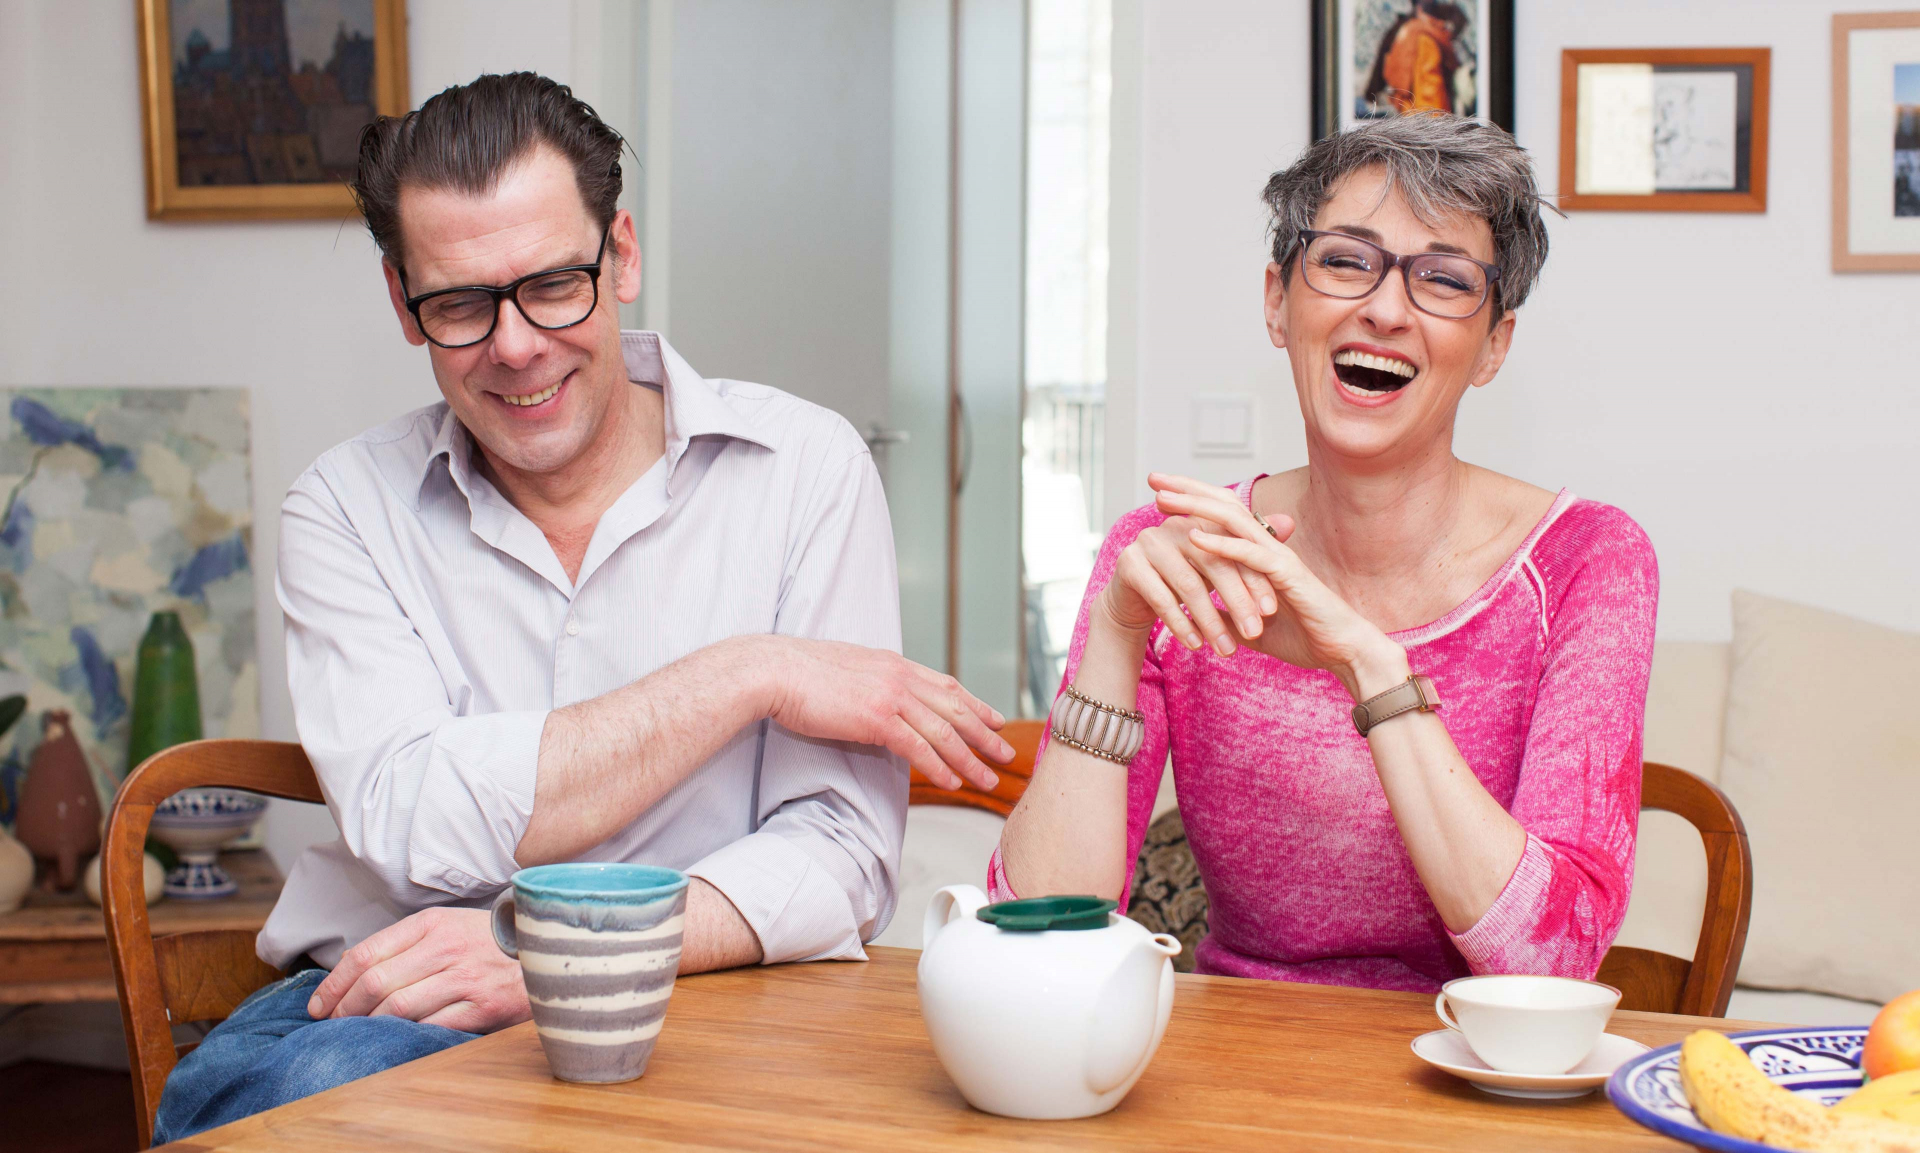 Man and woman laughing and sitting around a table